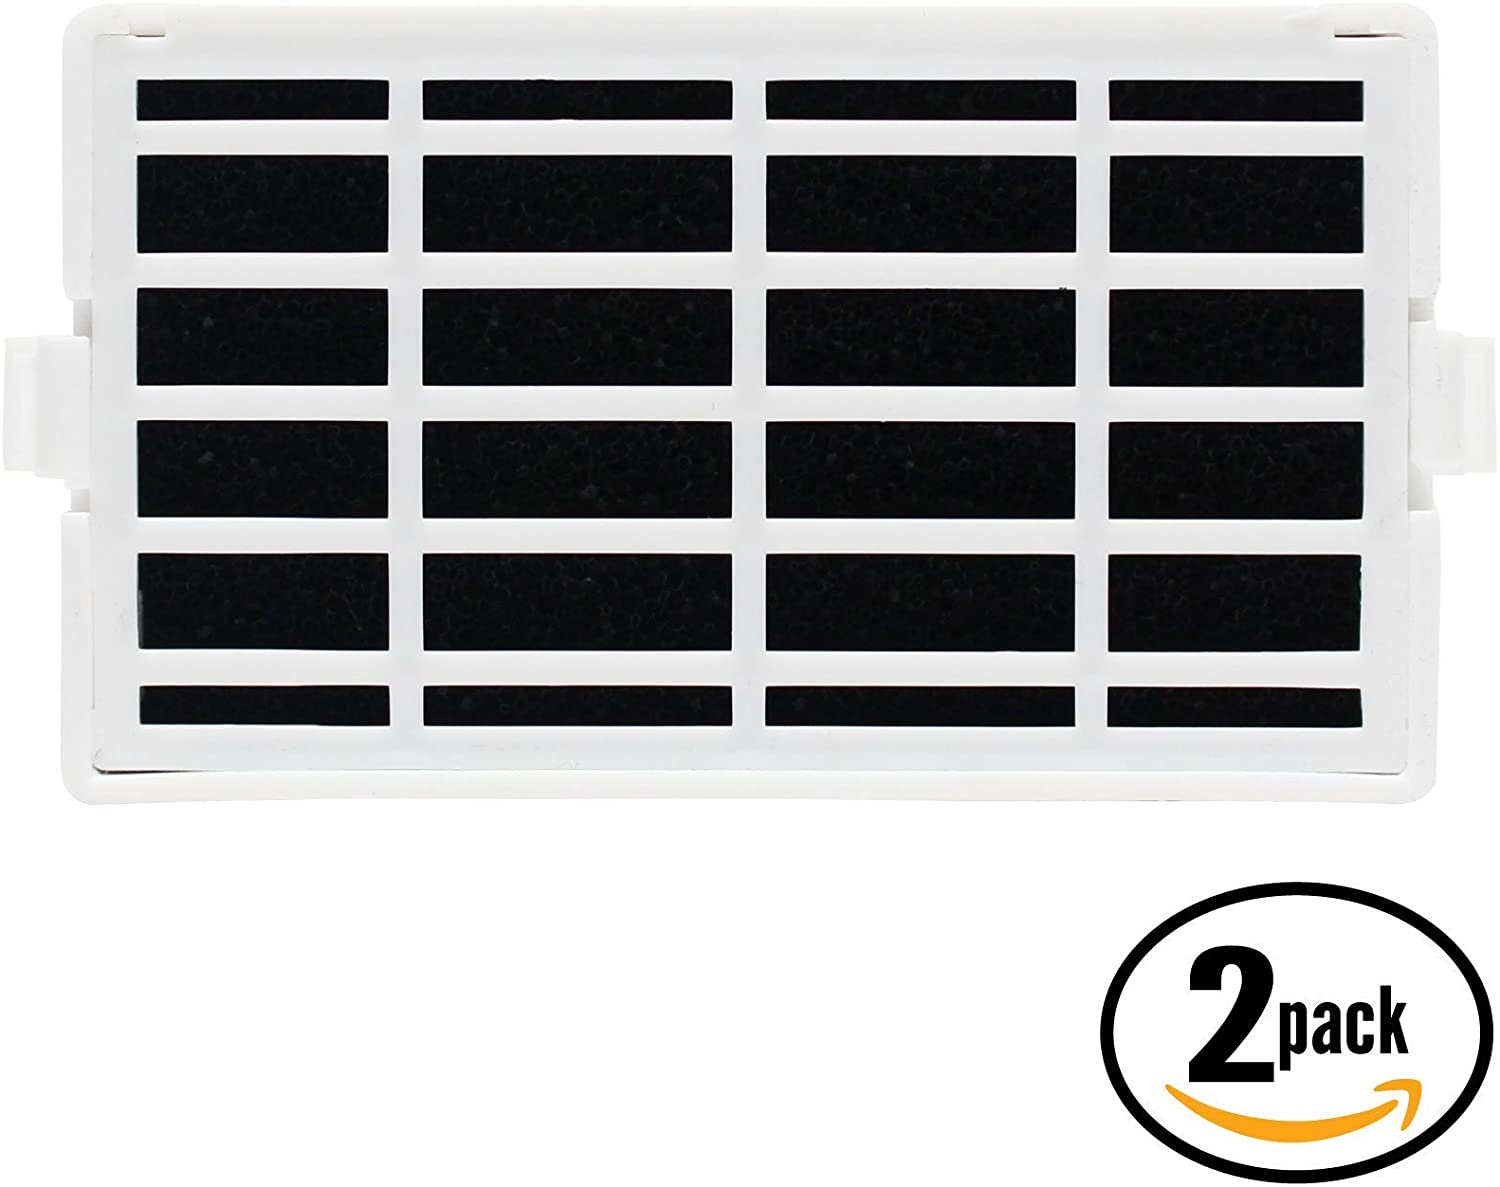 2-Pack Replacement for KSF26C4XYW03 Refrigerator Air Filter - Compatible with KitchenAid W10311524 AIR1 Fridge Air Filter